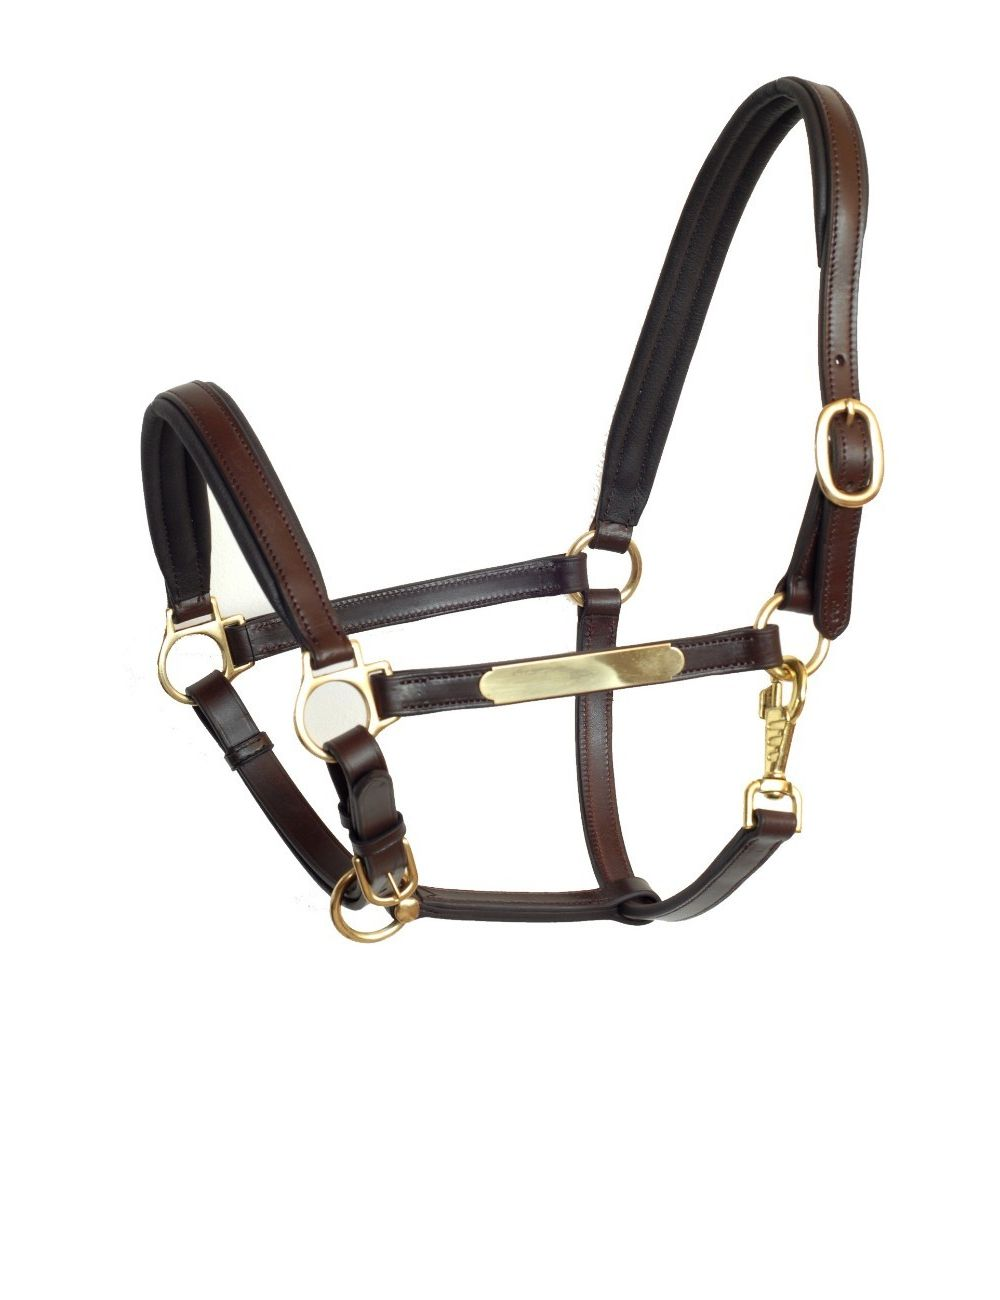 Döbert leather halter with name tag - 1